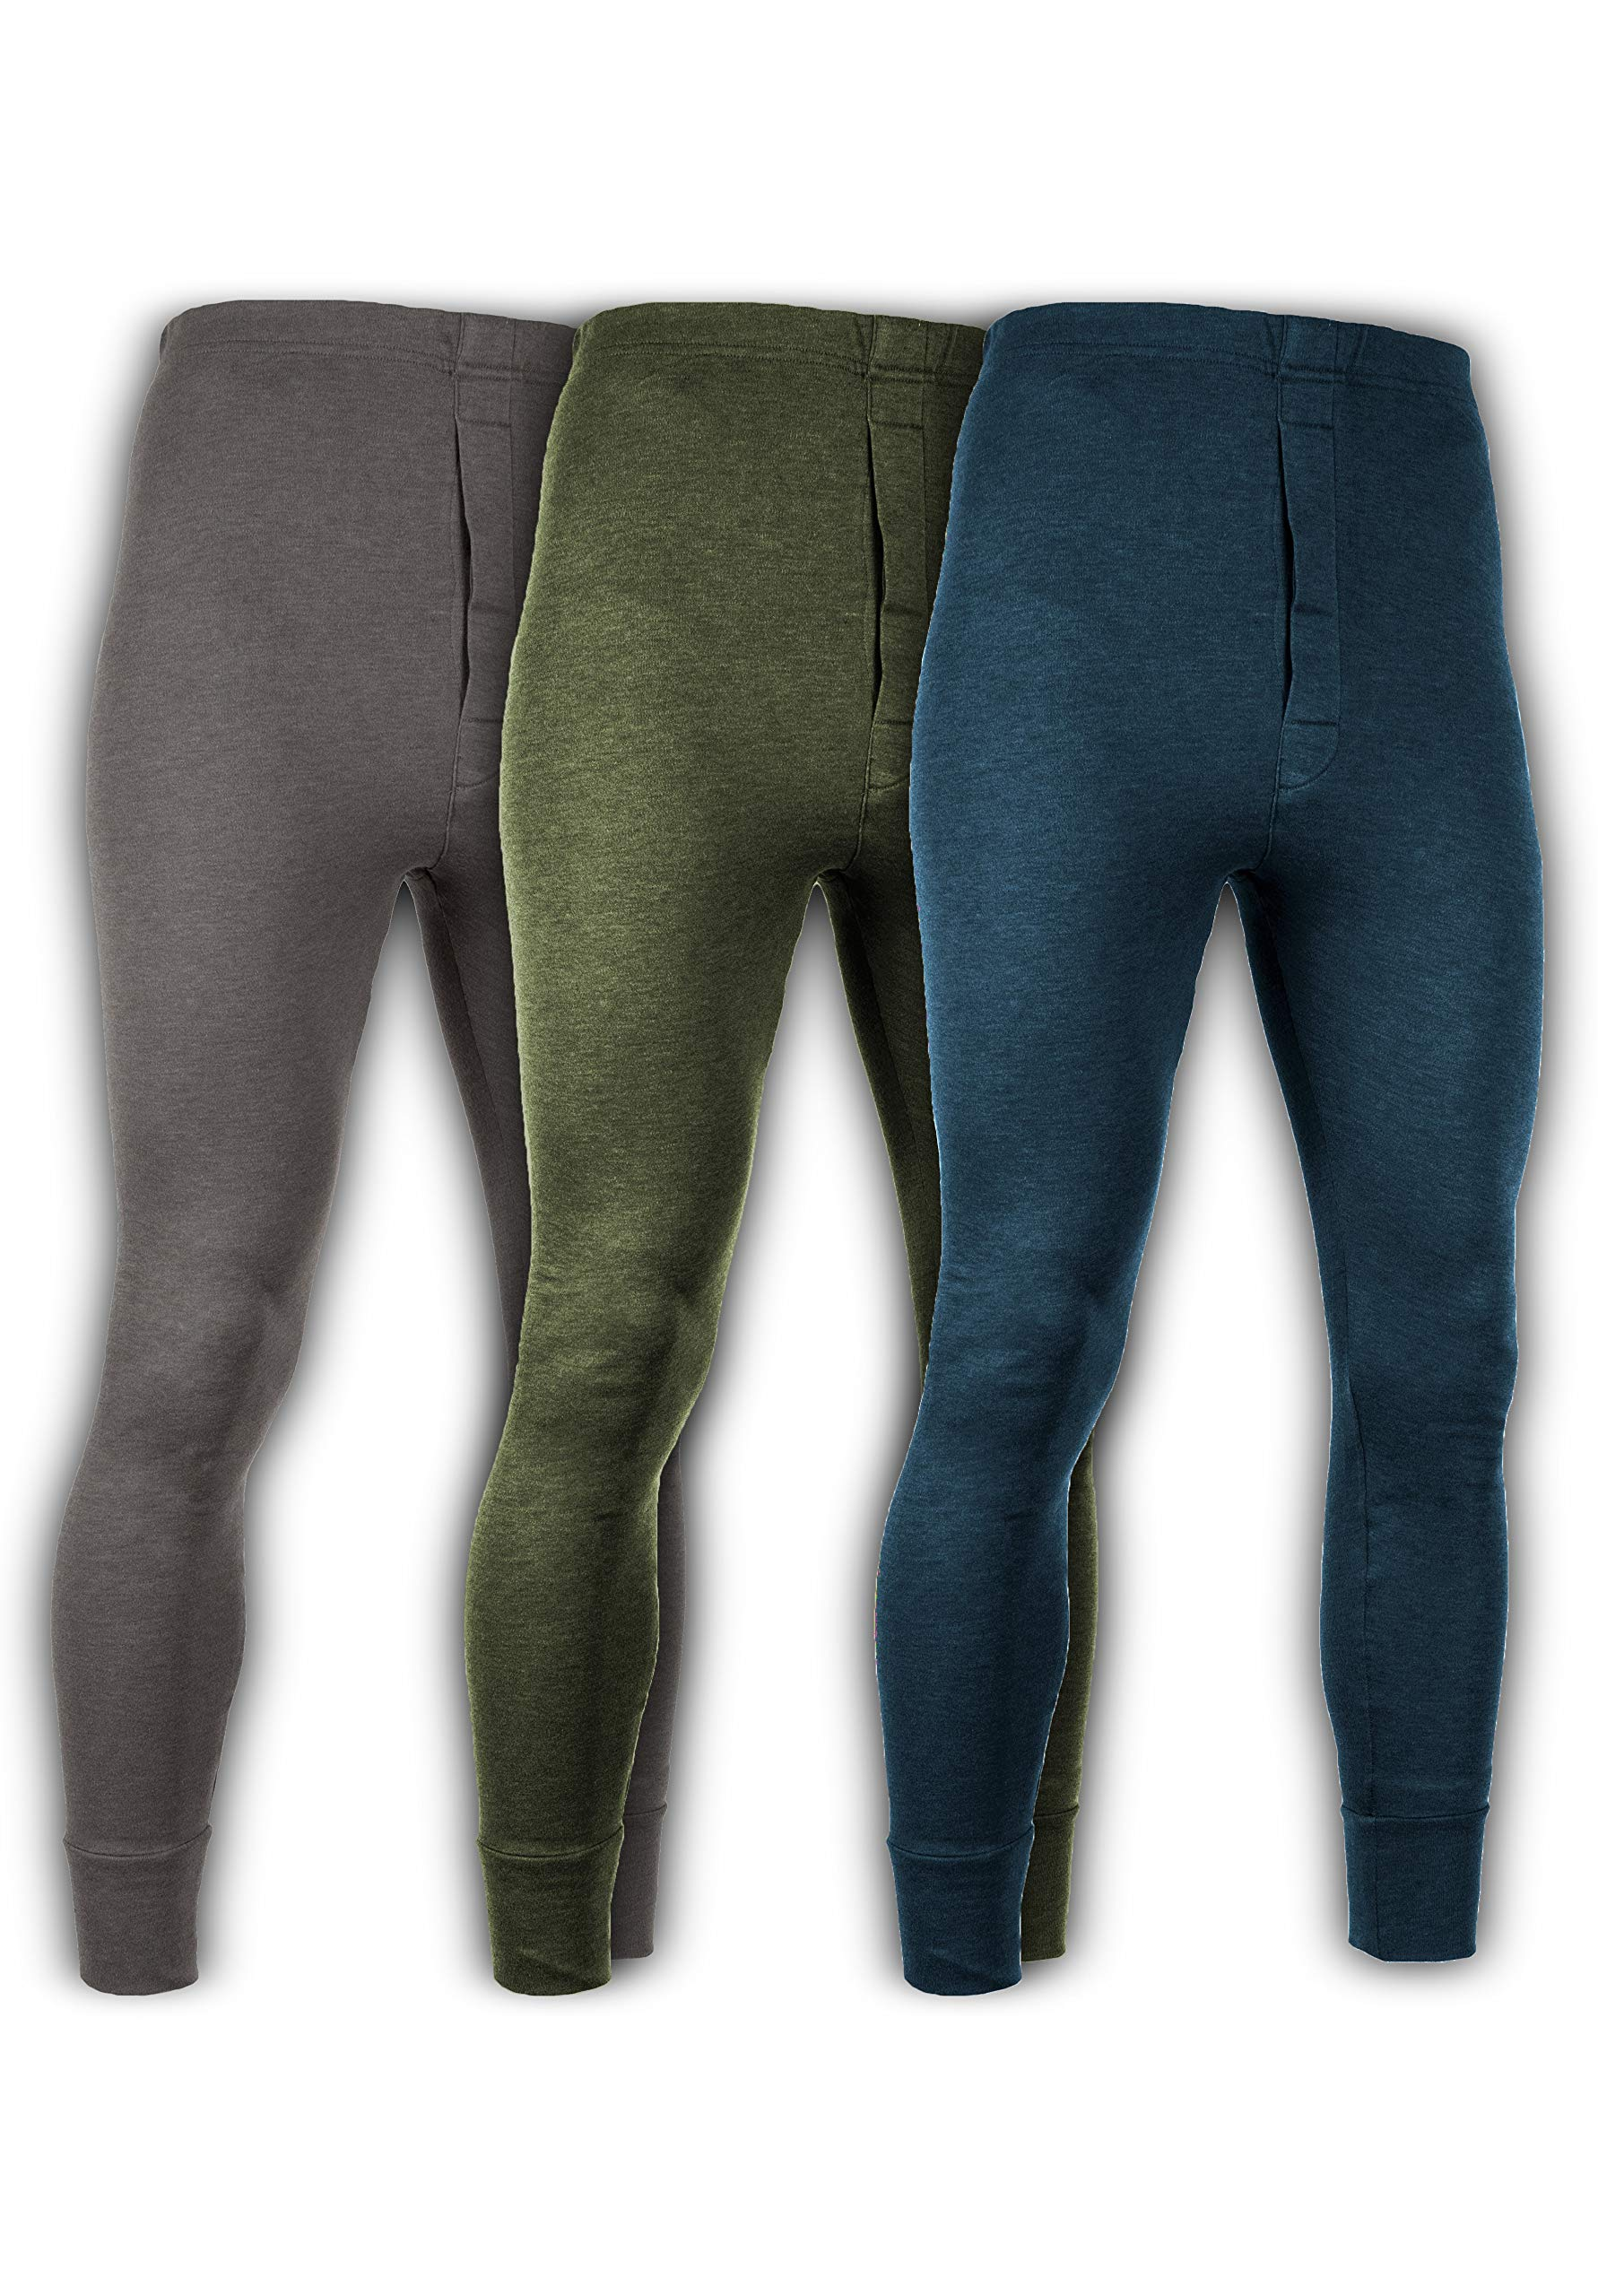 Andrew Scott Men's 3 Pack Premium Cotton Base Layer Long Thermal Underwear Pants (3 Pack- Charcoal/Olive/Legion Blue, XX-Large) by Andrew Scott